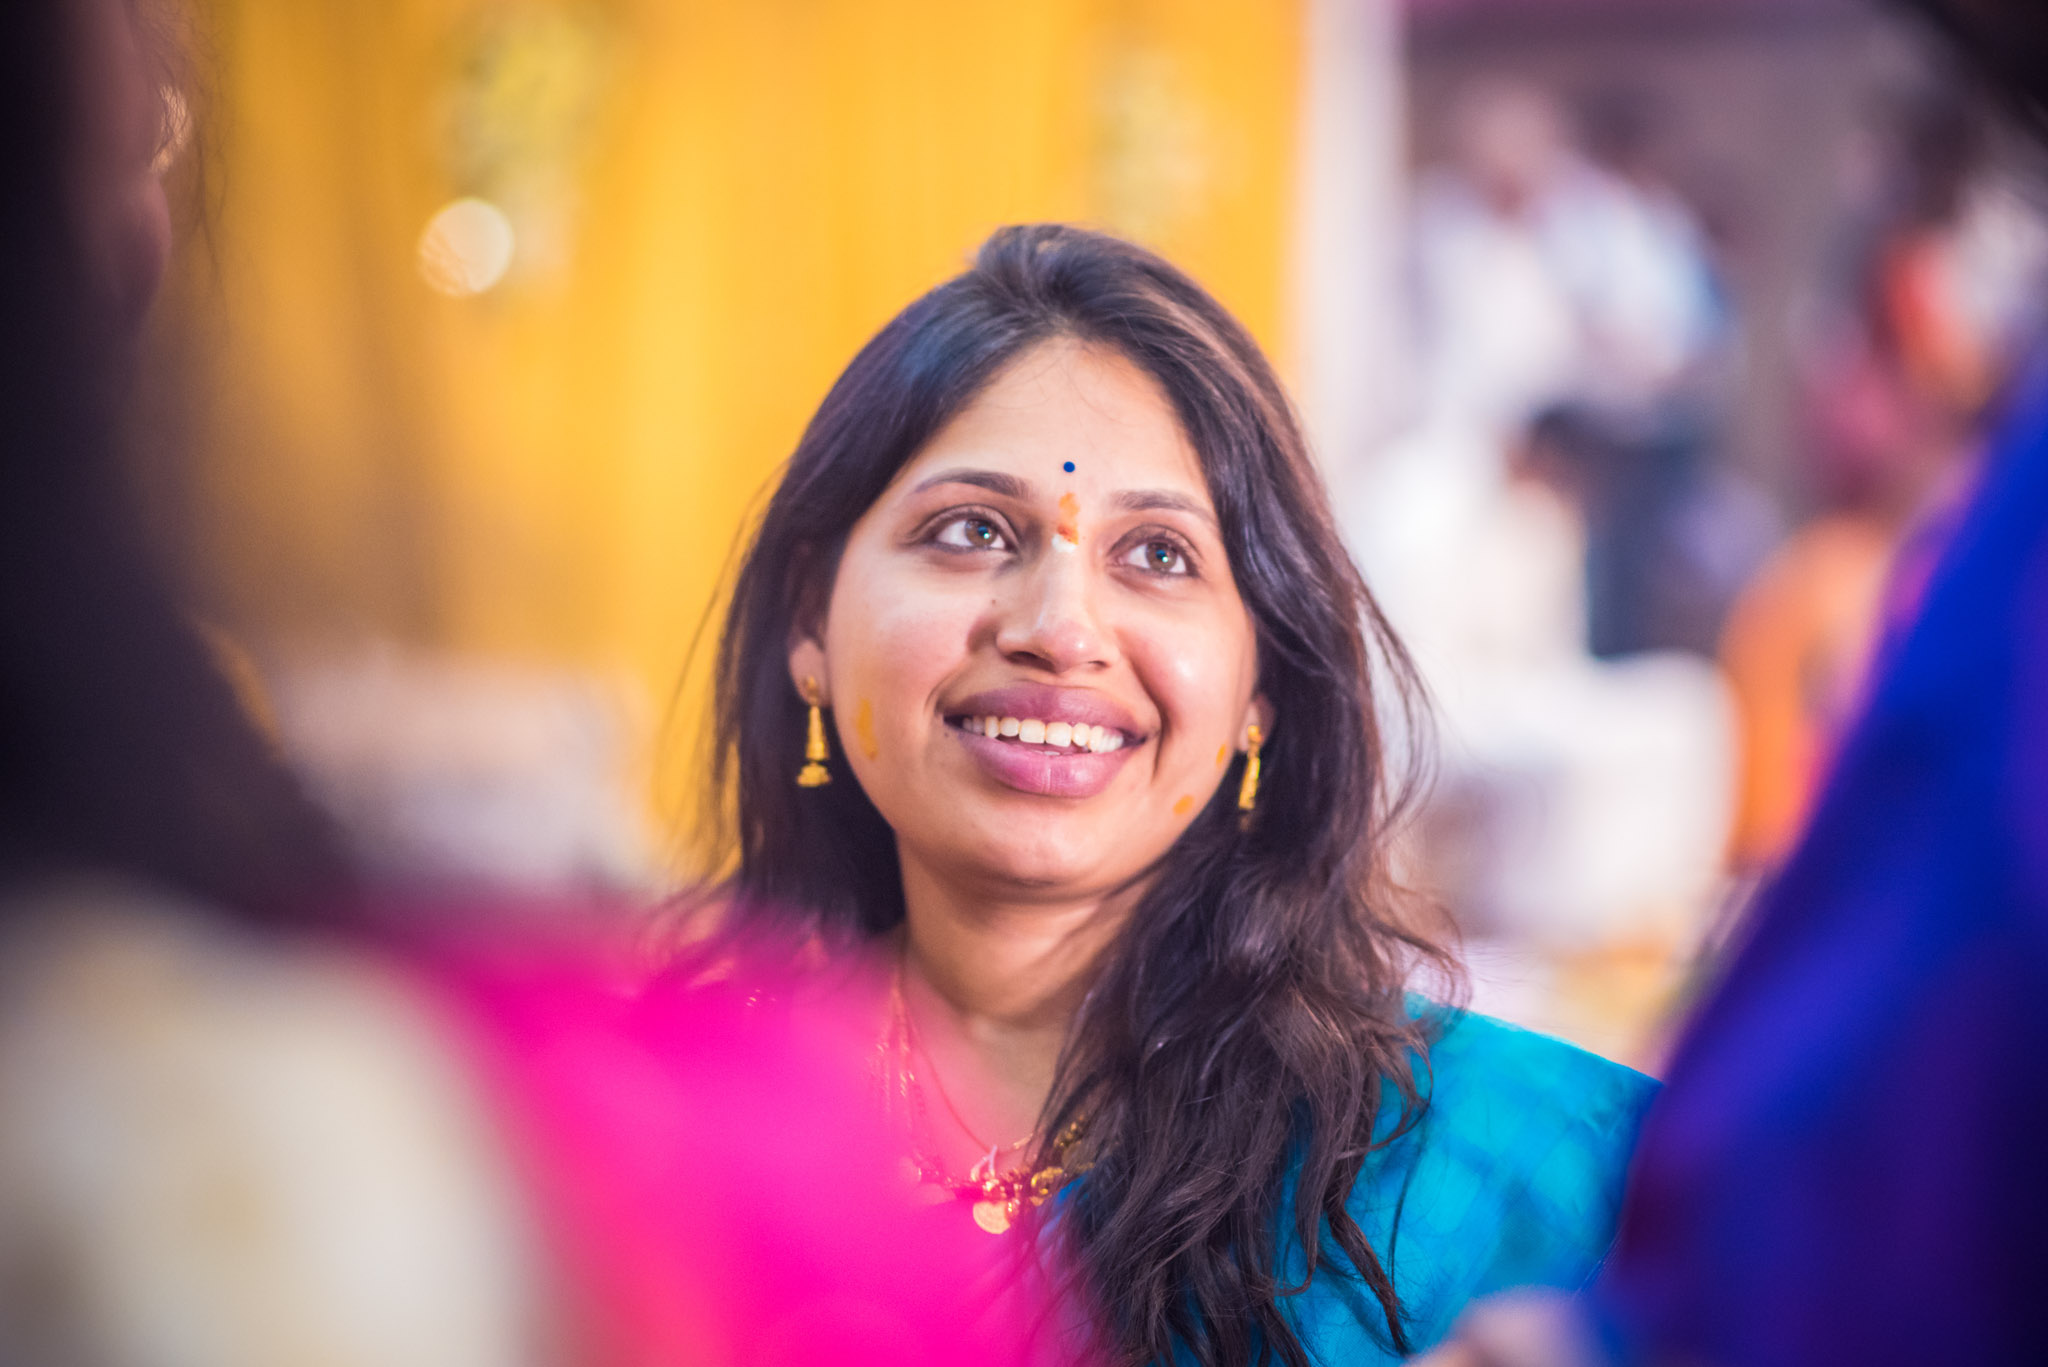 WhatKnot-Candid-Wedding-Photography-Mumbai-Bangalore-94